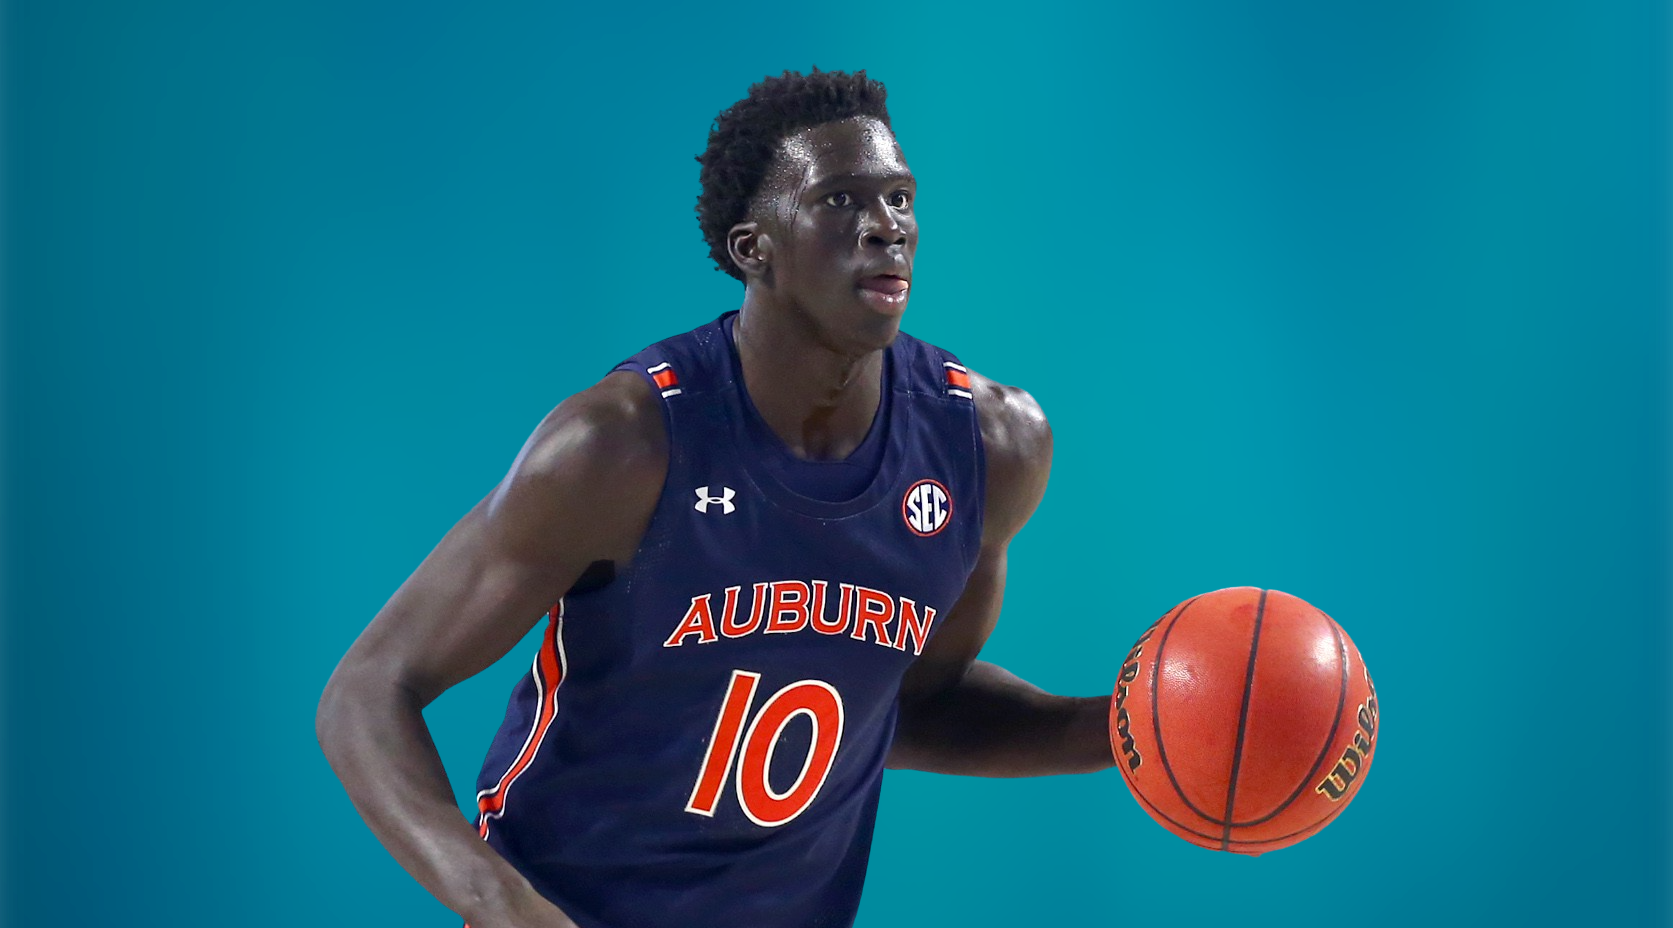 NBA prospect JT Thor: 'I think I'm going to be one of the best players in the world someday'